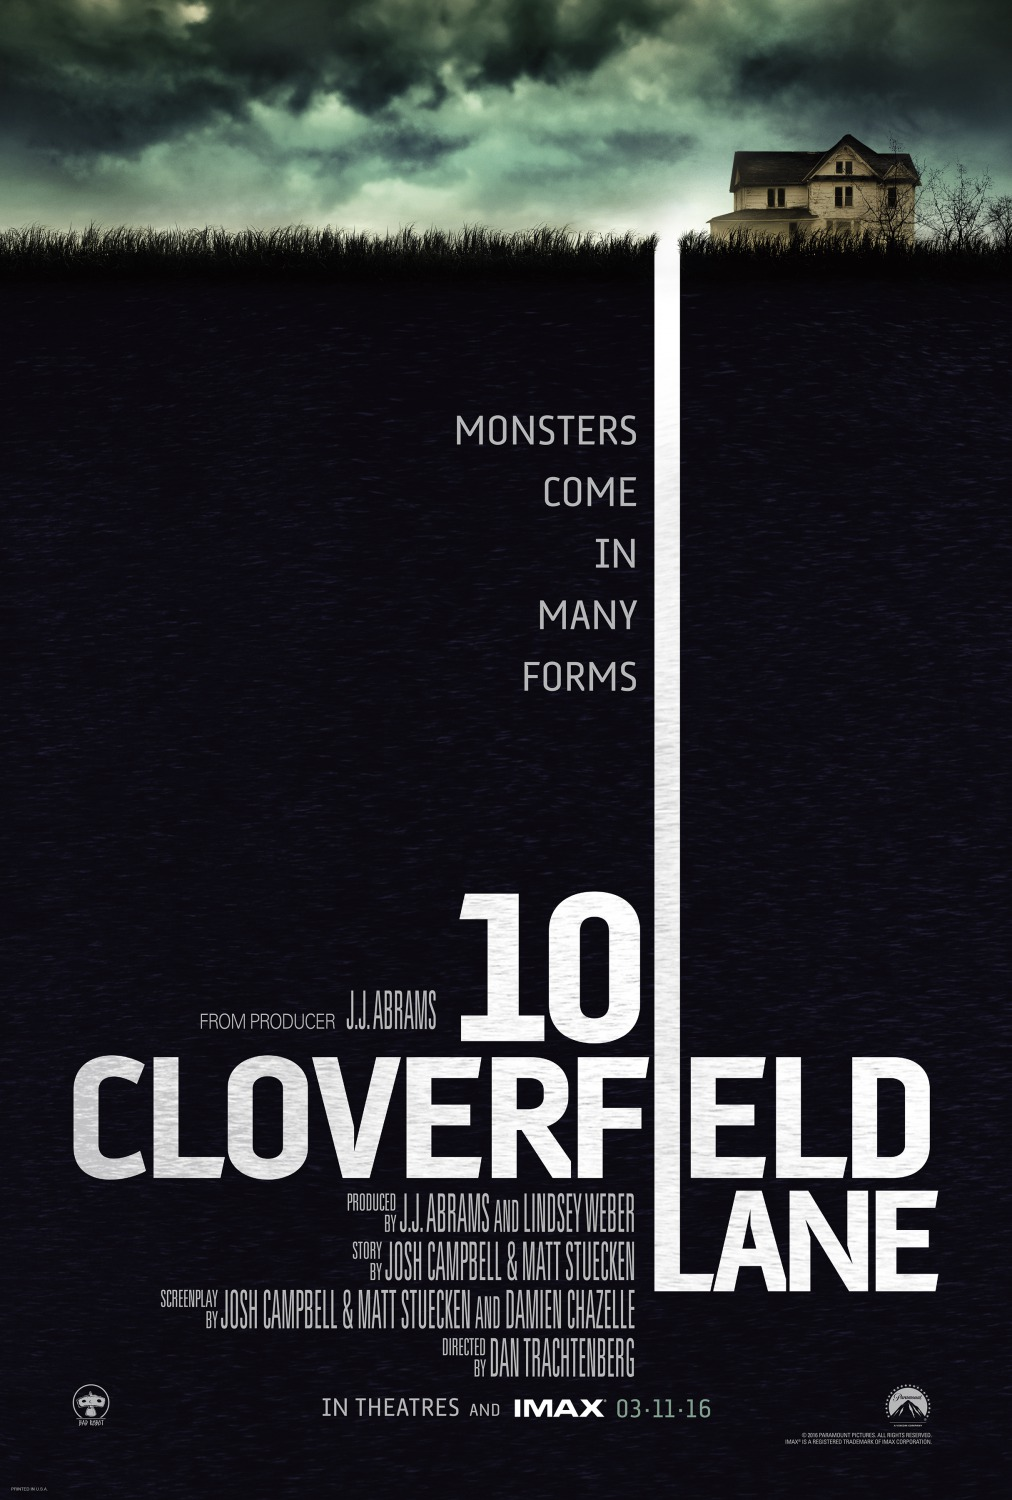 10-cloverfield-lane-poster.jpg